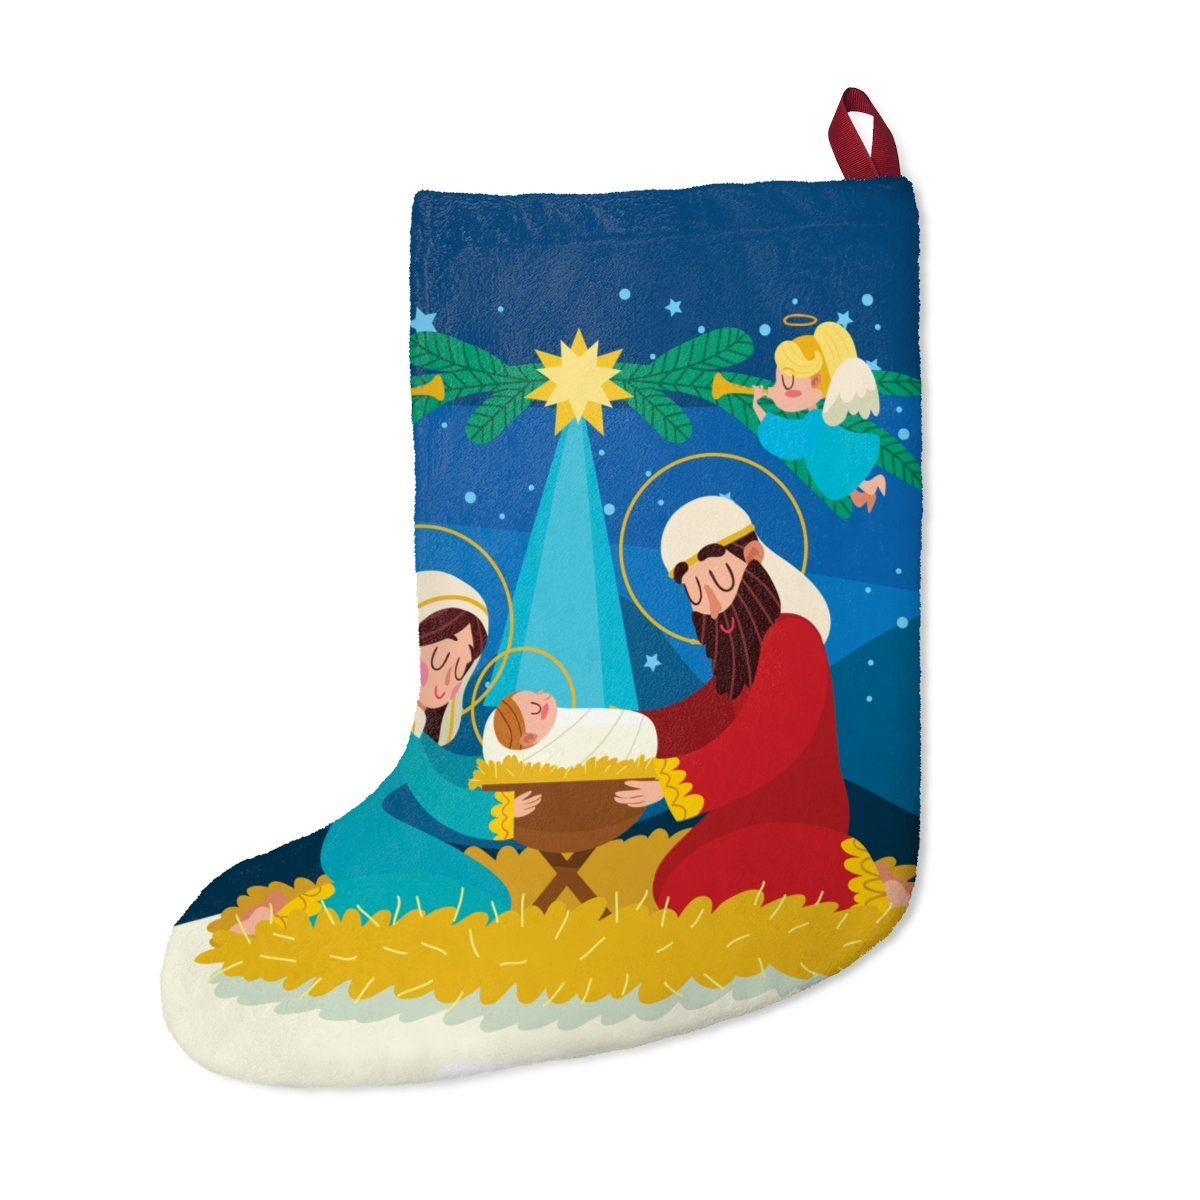 Christmas Stockings - Nativity Scene